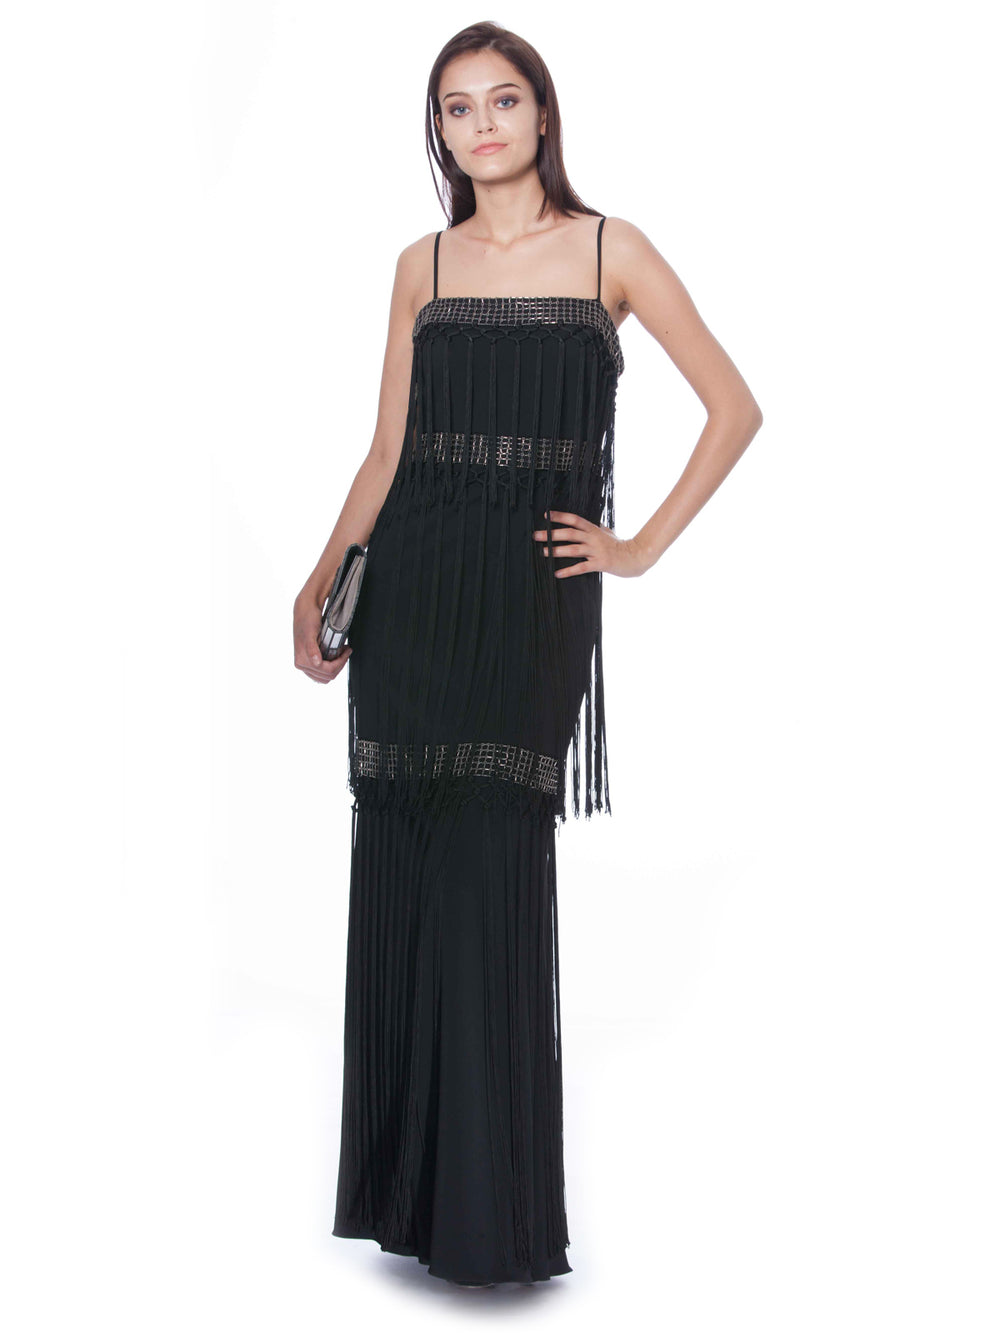 Sleeveless Embellished Tiered Fringe Gown, BADGLEY MISCHKA - elilhaam.com